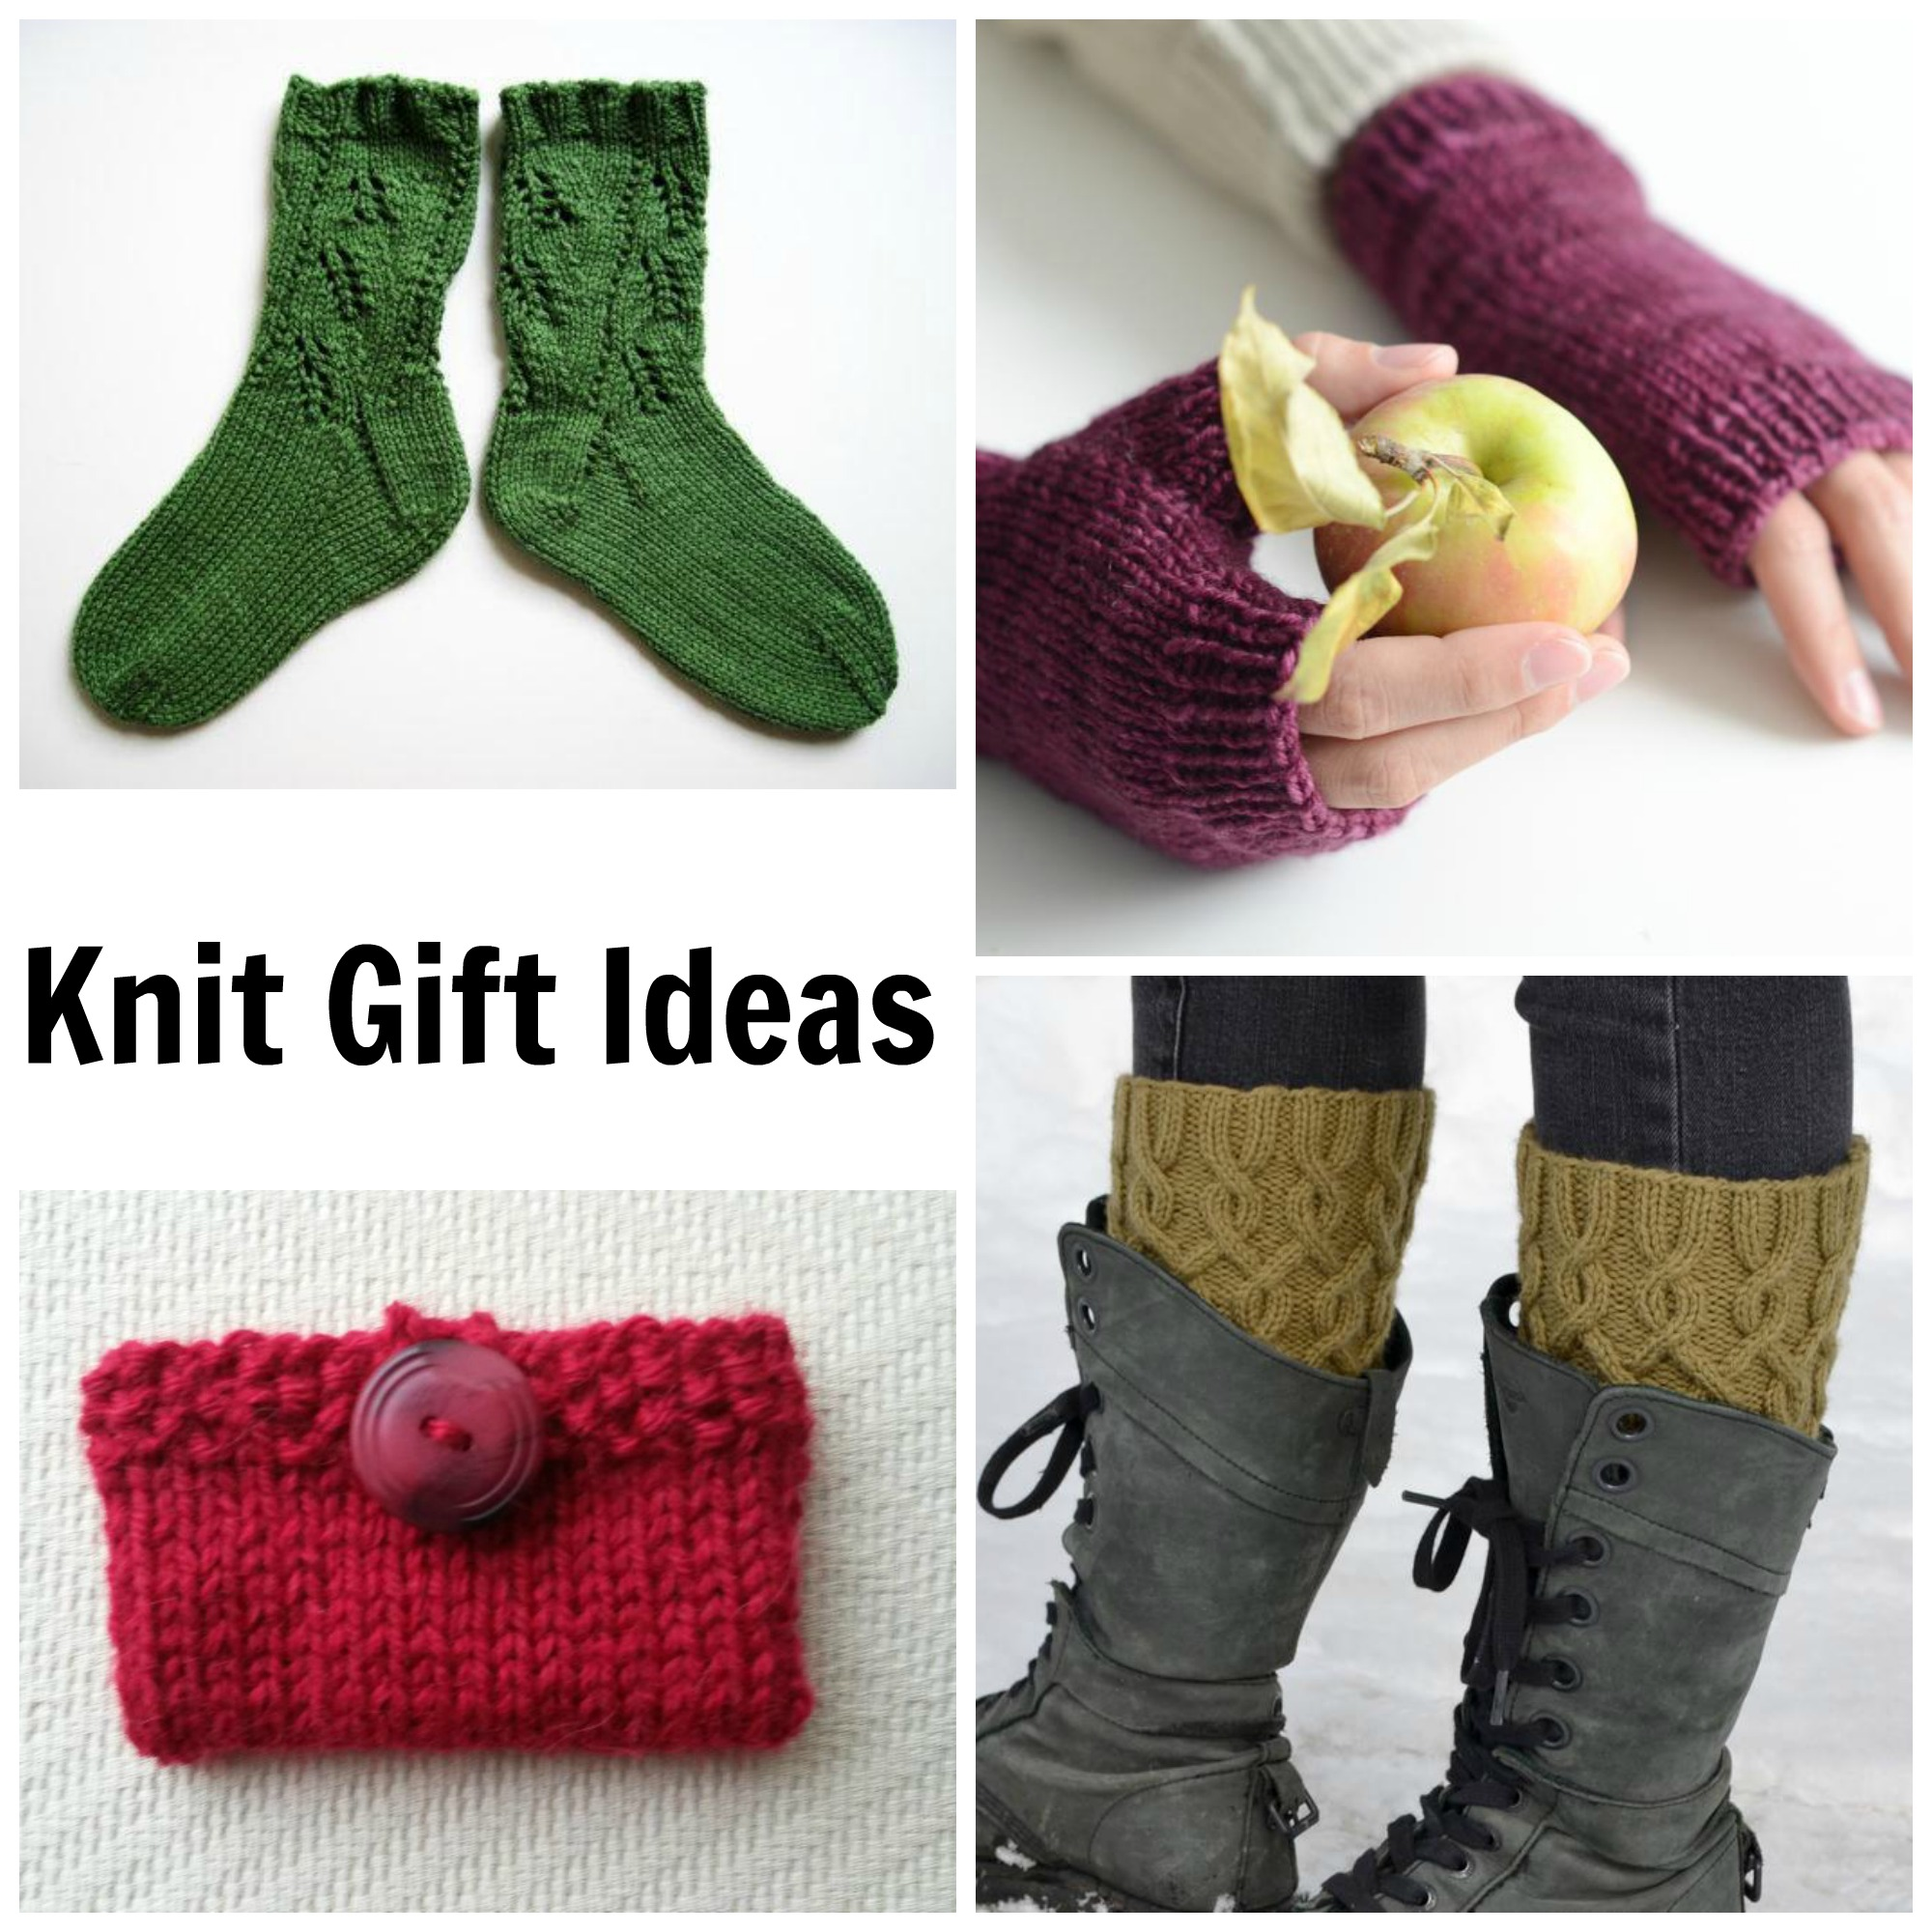 Knitting Gifts stitched from the heart: easy and fast knitted gift ideas for every occasion hjrjmxi